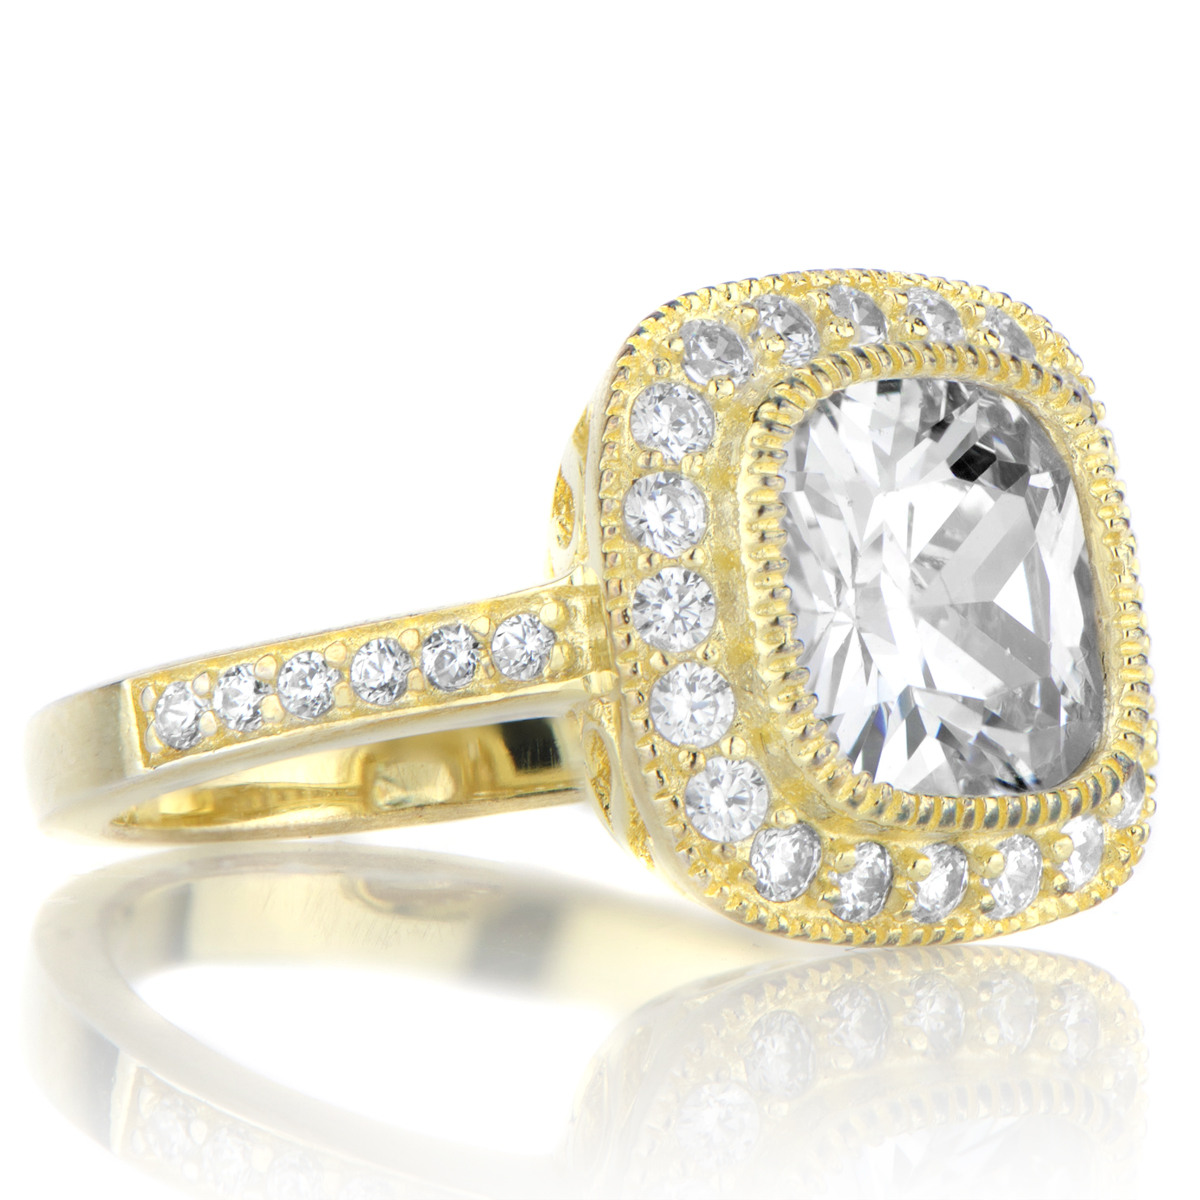 Gina's Vintage Style Cushion Cut Cz Engagement Ring  Goldtone